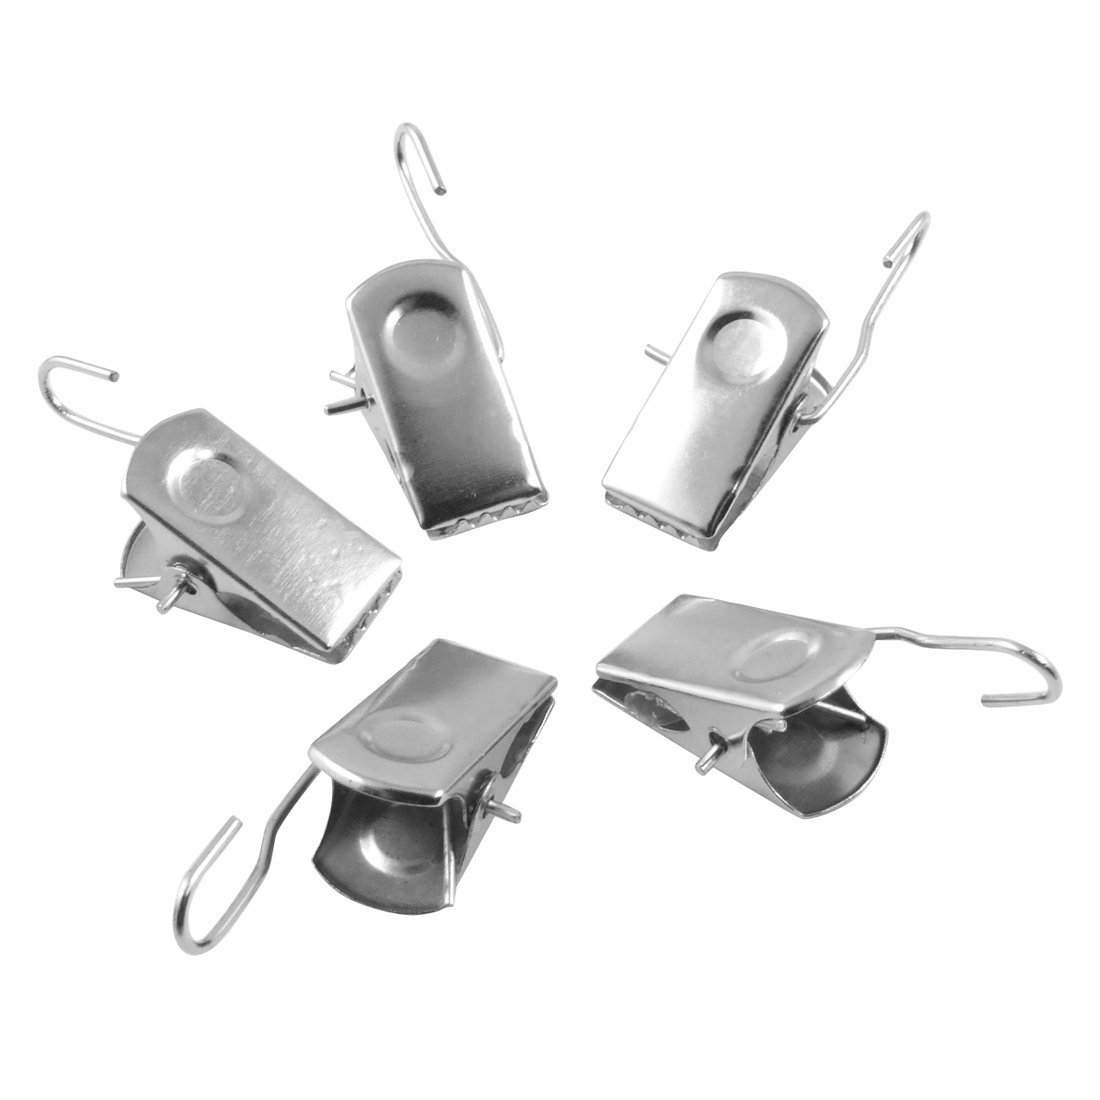 20 Pcs Metal Silver Tone Sprung Hook Metal Clip Clamps Curtain Drapery Clips, posted from London by Fat-catz-copy-catz 20 clips